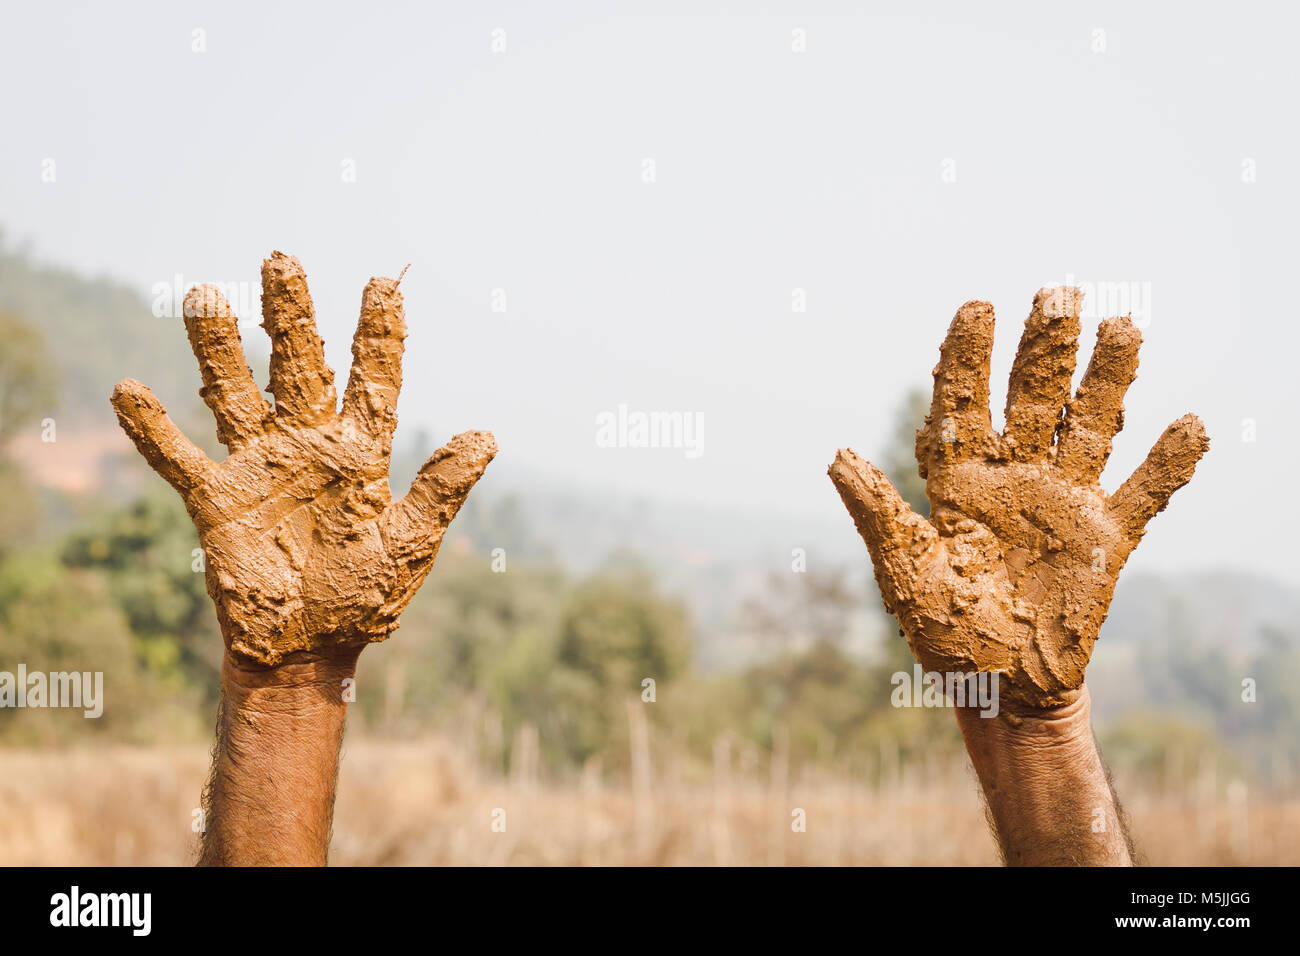 Unidentified Worker showing his muddy hands, Dirty Hands. - Stock Image